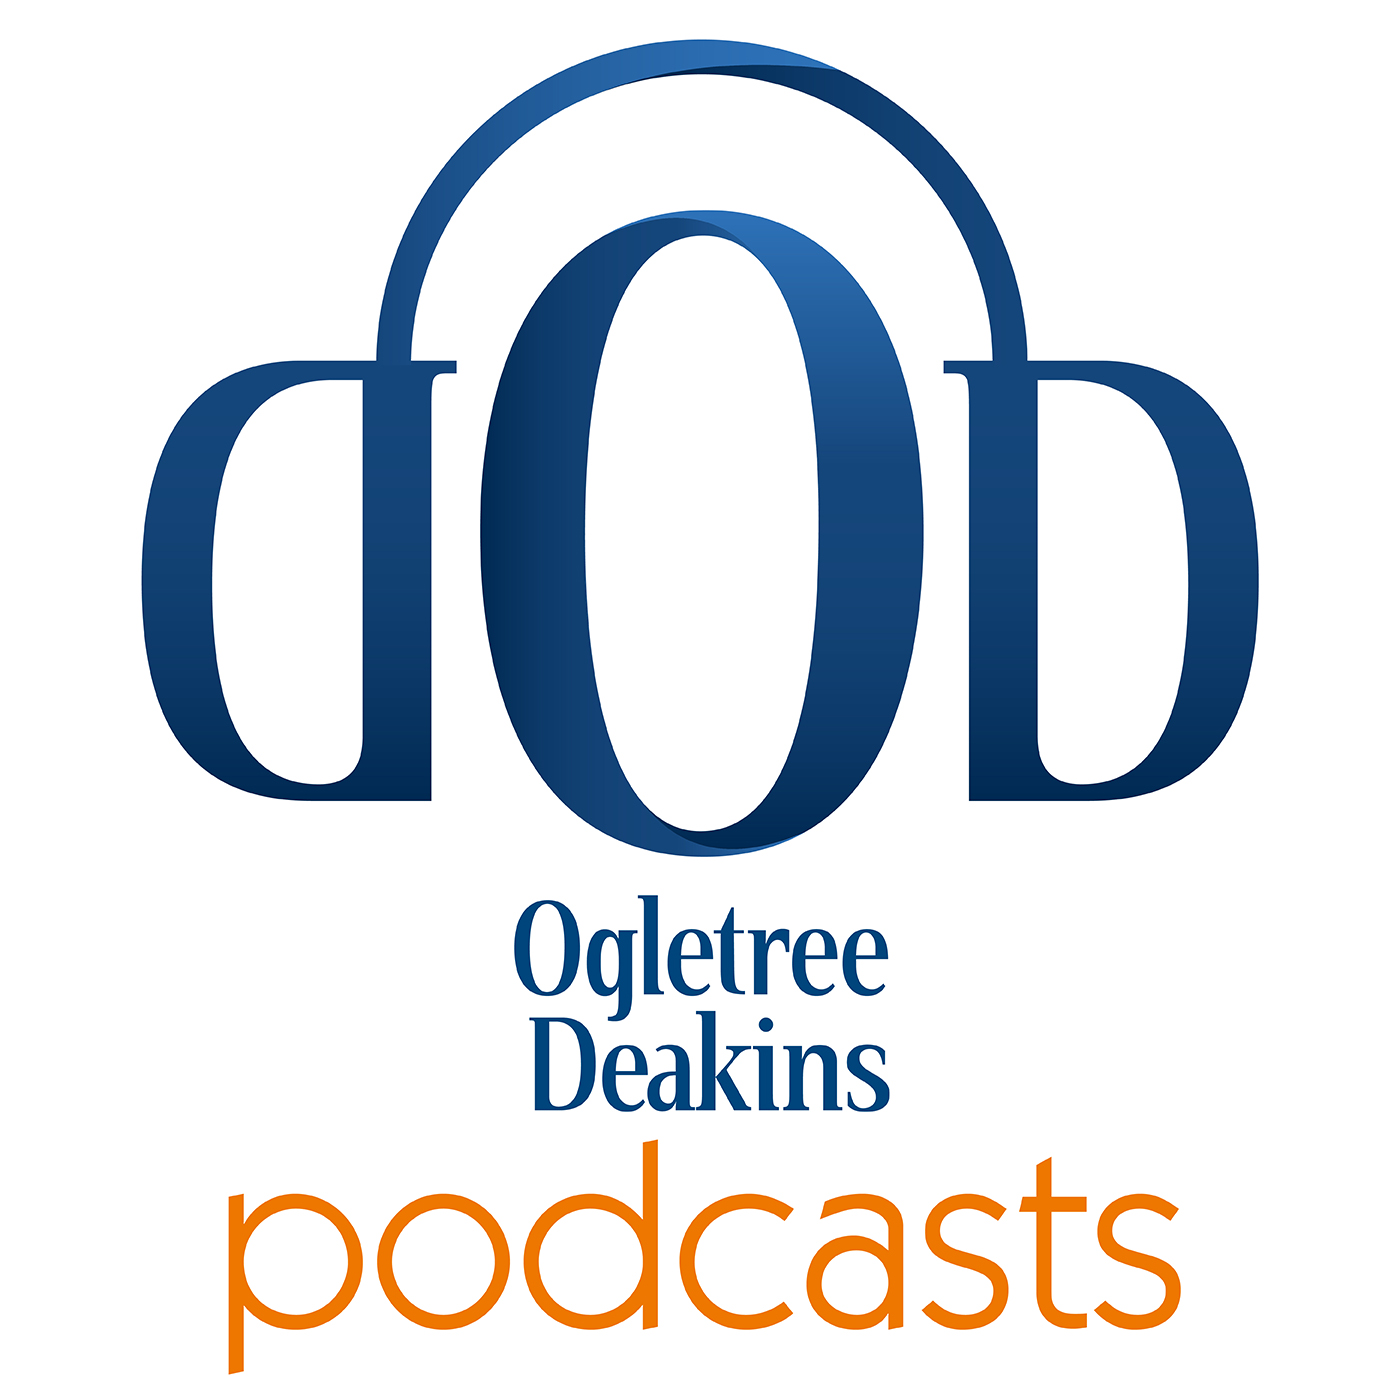 Ogletree Deakins Podcasts